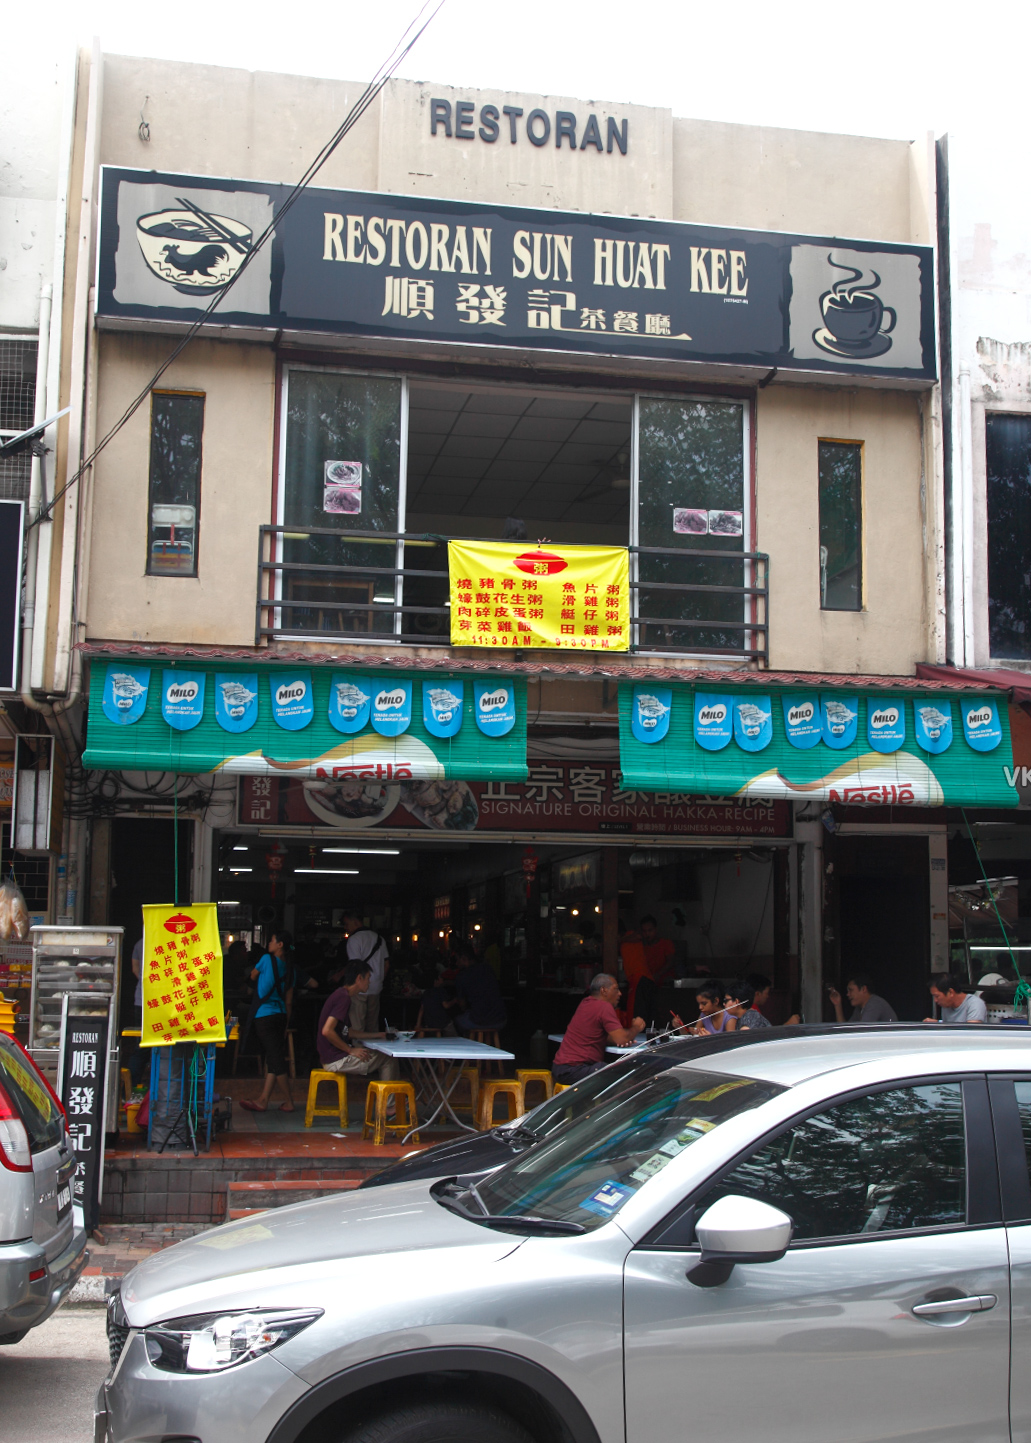 Sun Huat Kee Bangsar Coffee Shop